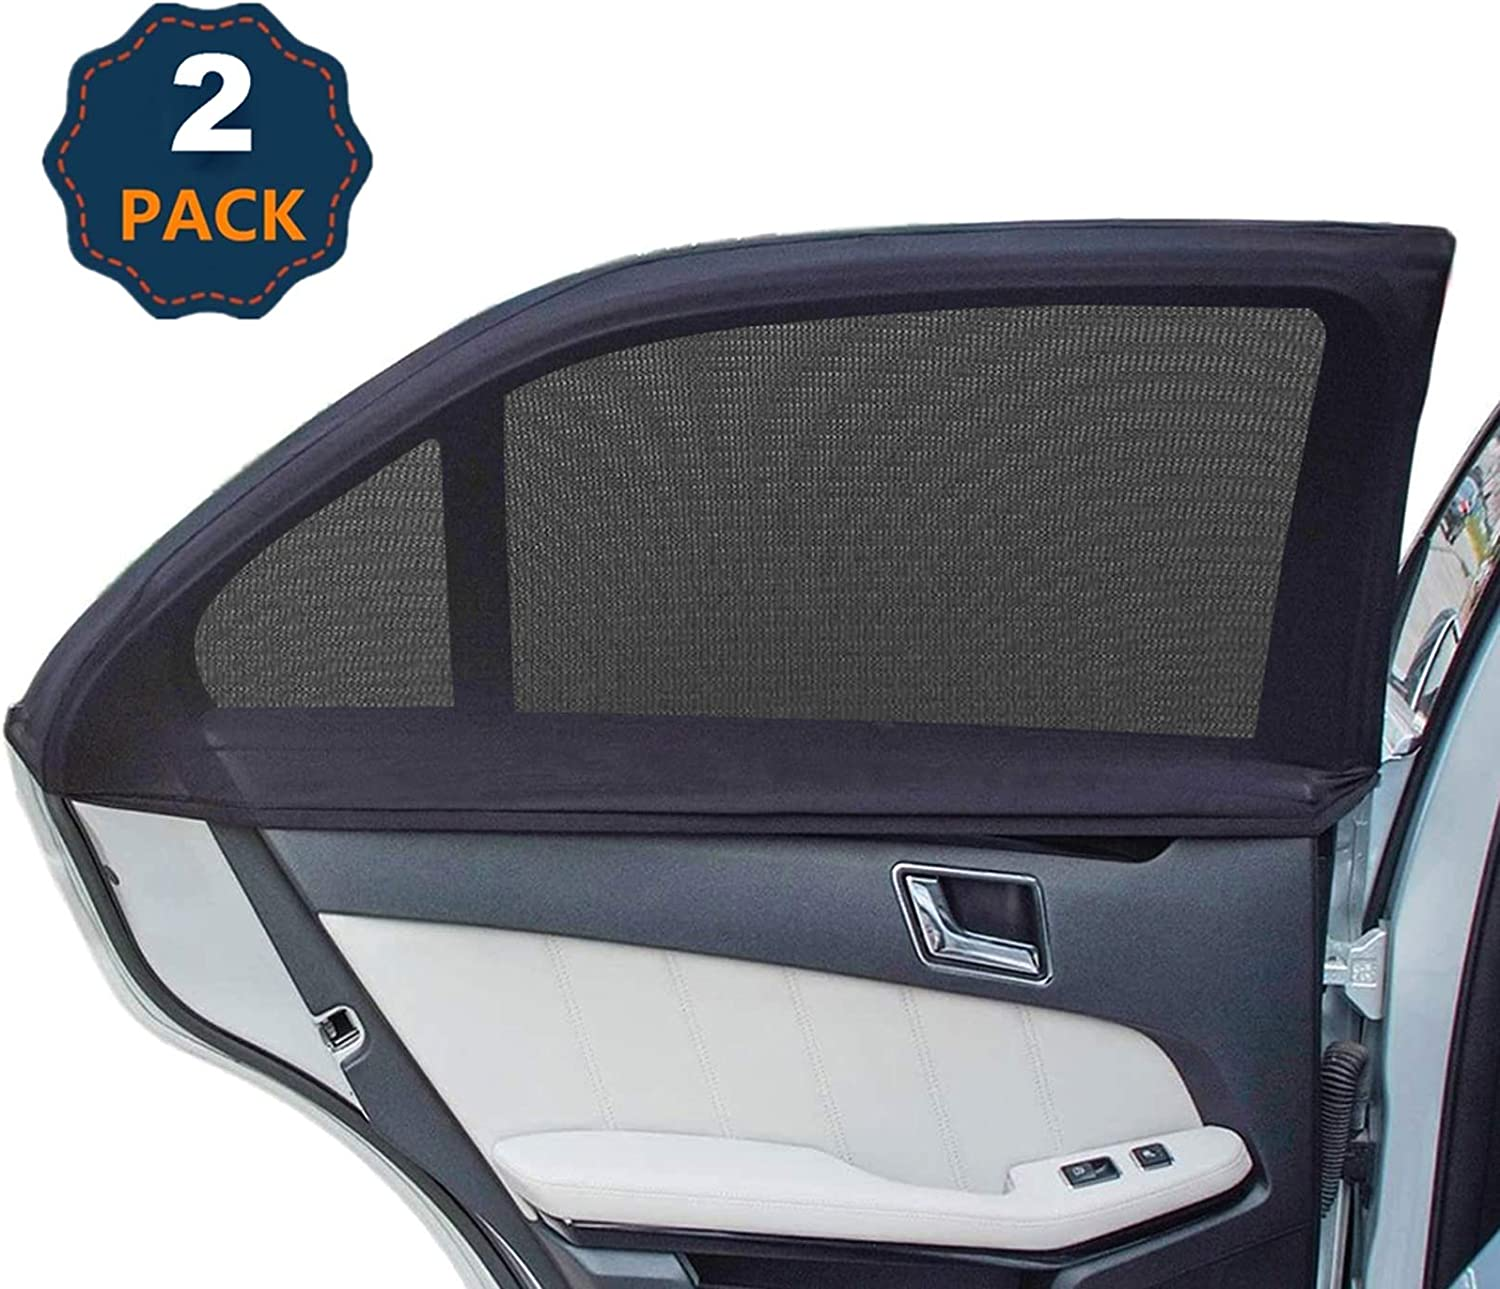 Amazon Com Universal Car Window Shades Side Window Shade For Car Breathable Mesh Baby Car Rear Window Sunshades Protects Kids From Sun Glare And Uv Rays 2 Pack Automotive